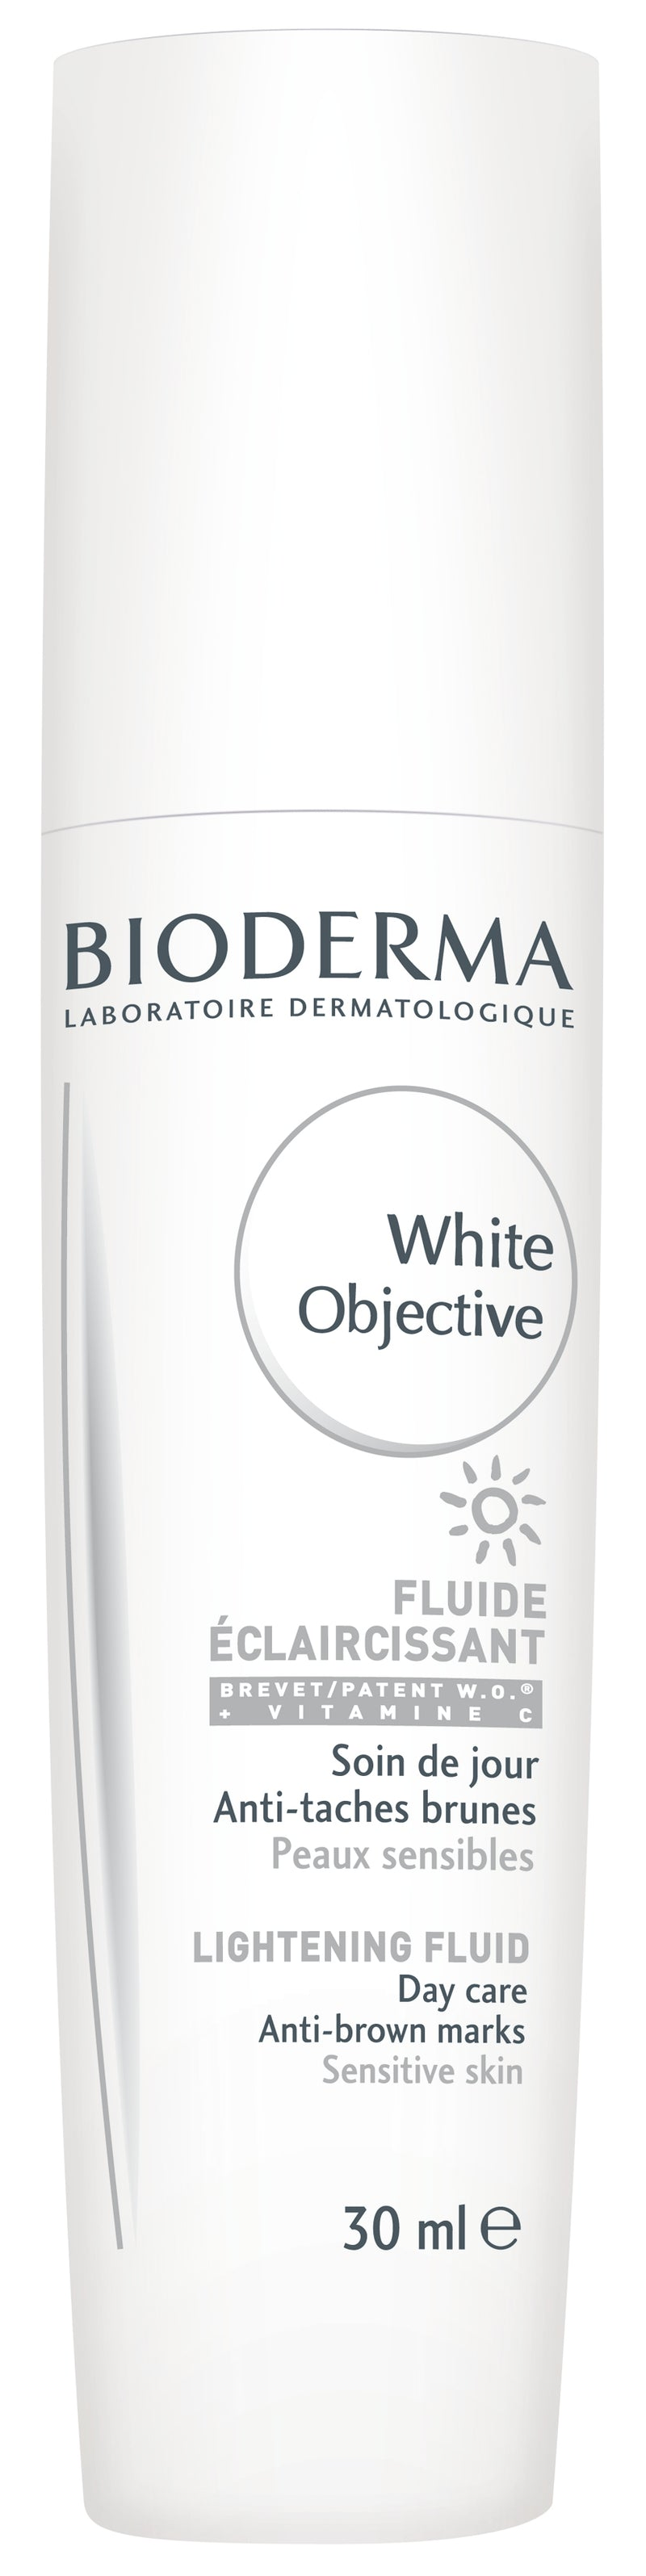 BIODERMA White Objective Fluid